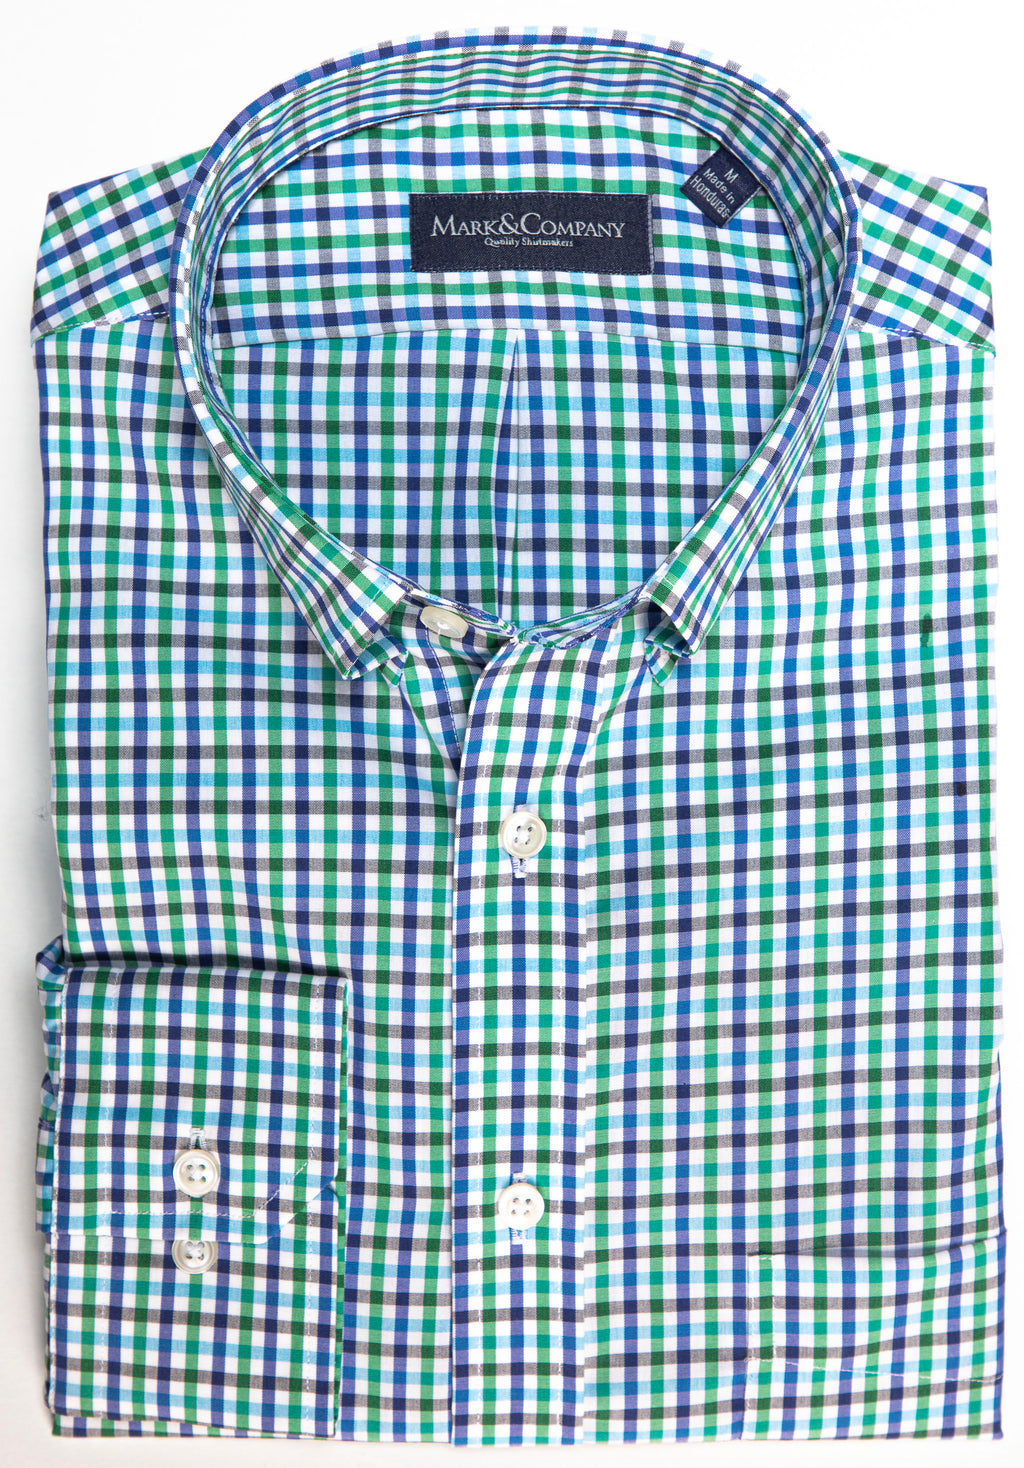 Green and Blue and Gray Tattersall Check Button Down Shirt